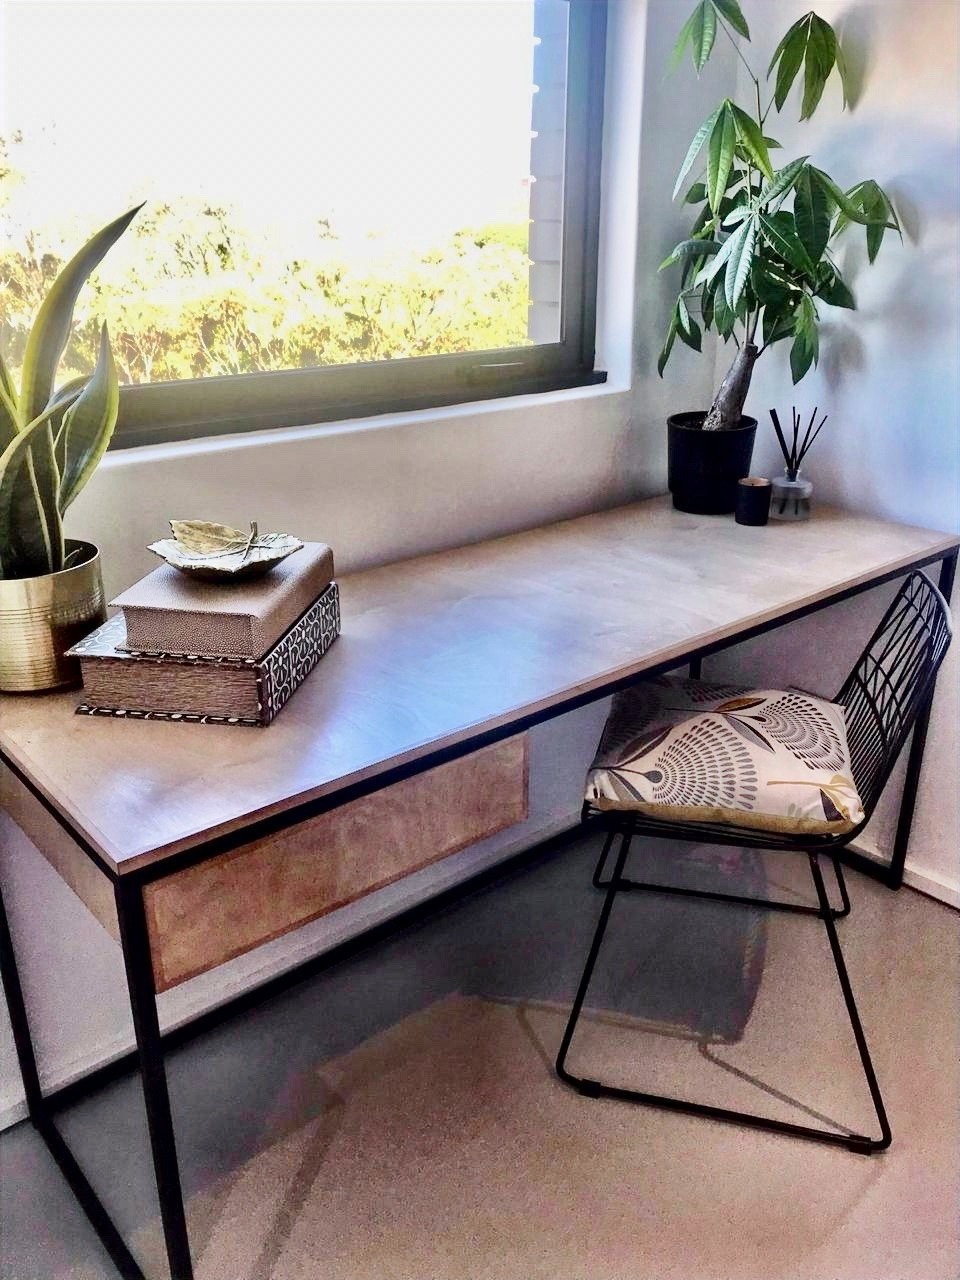 Home desk in steel and wood